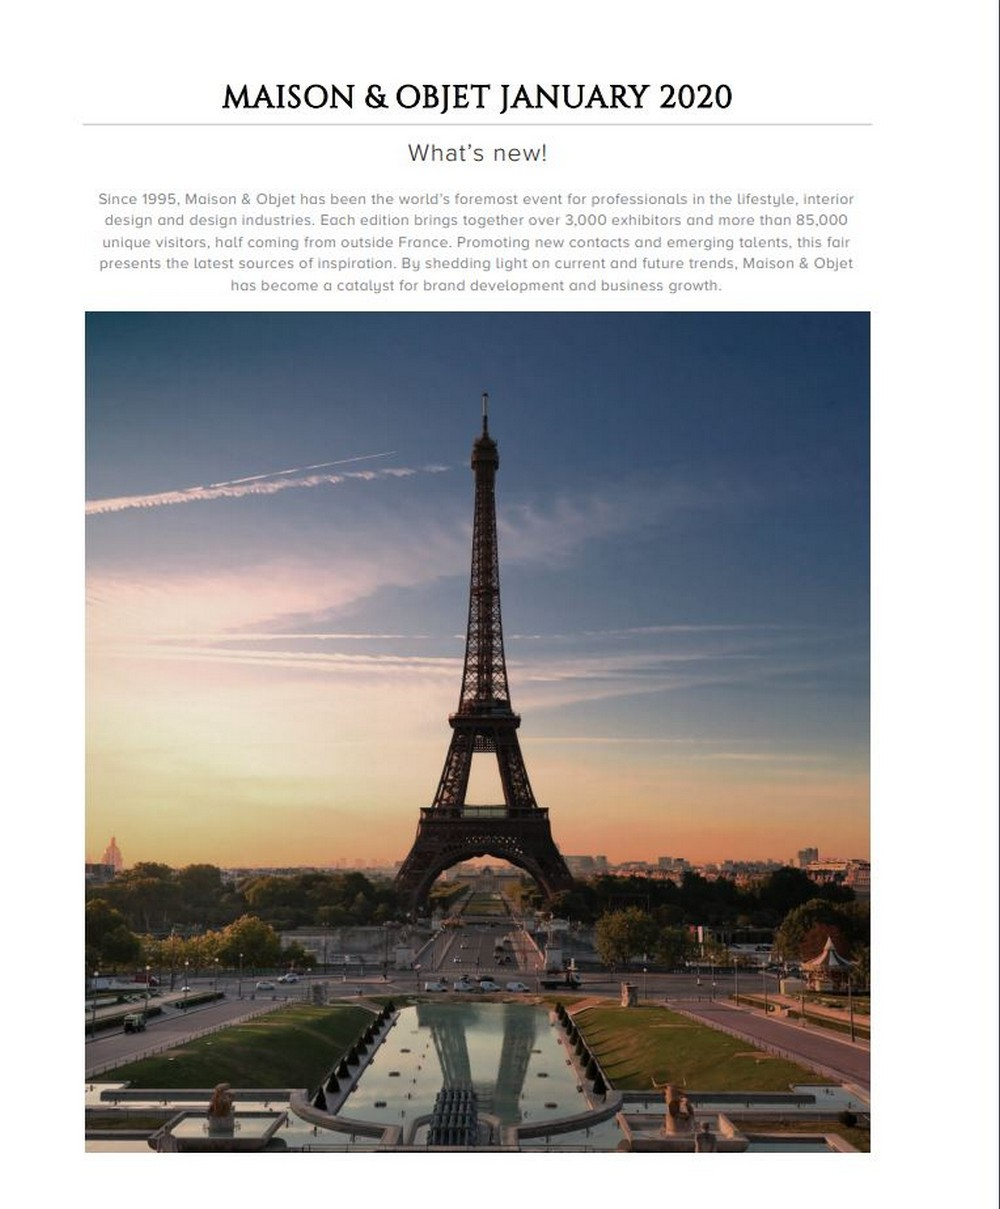 Maison et Objet 2020 - Here Is Why You Should By CovetED's 16th Issue! maison et objet Maison et Objet 2020 – Here Is Why You Should By CovetED's 16th Issue! Maison et Objet 2020 Here Is Why You Should By CovetEDs 16th Issue 3